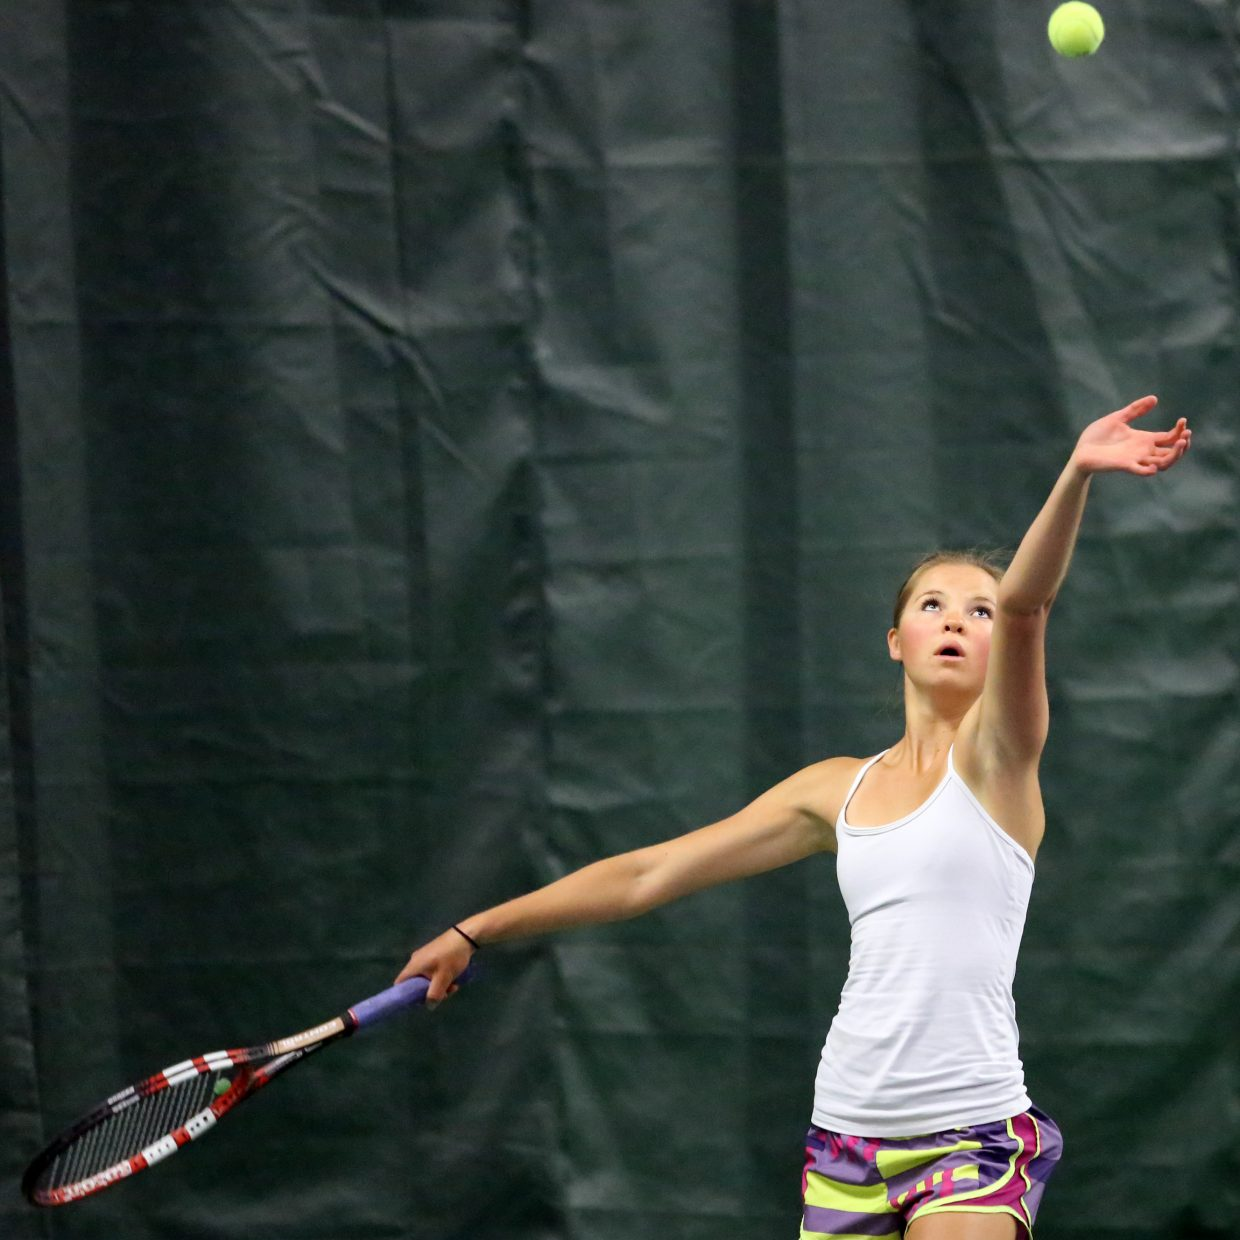 Steamboat's Kira Lorenzen prepares to serve as she plays alongside her father, Dave Lorenzen, Sunday at The Tennis Center at Steamboat Springs.